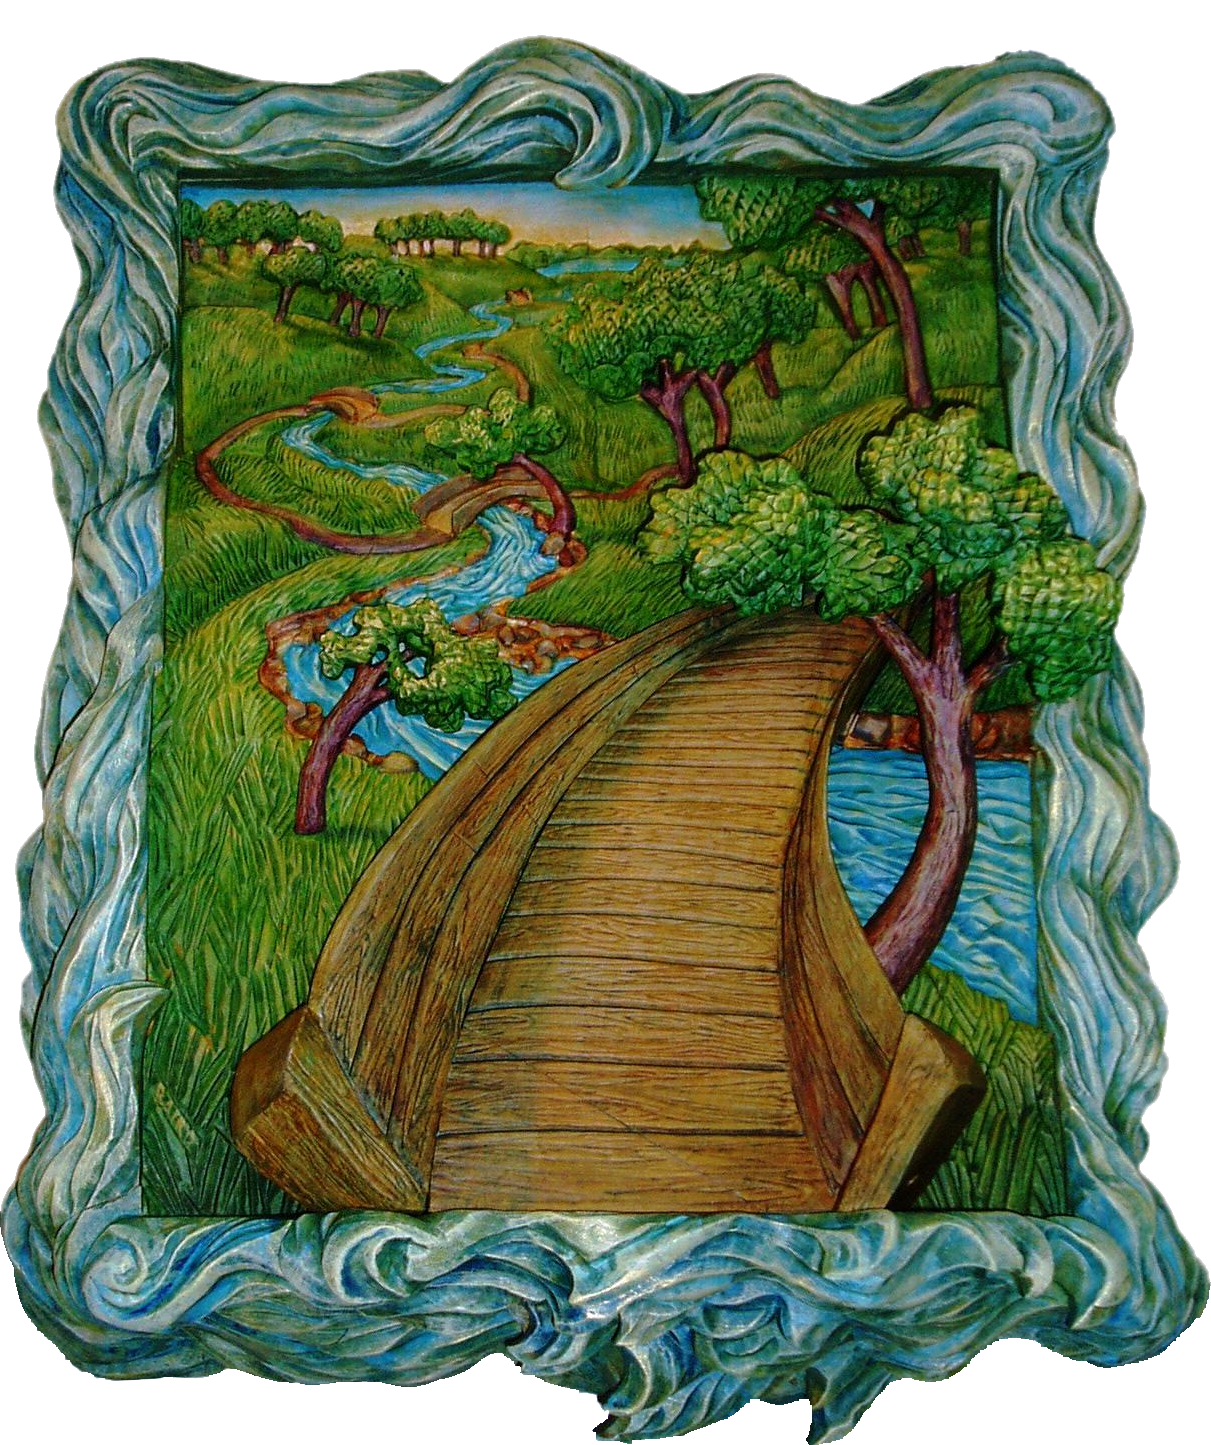 image of a painted woodcarving, bas relief scene of a bridge crossing a stream